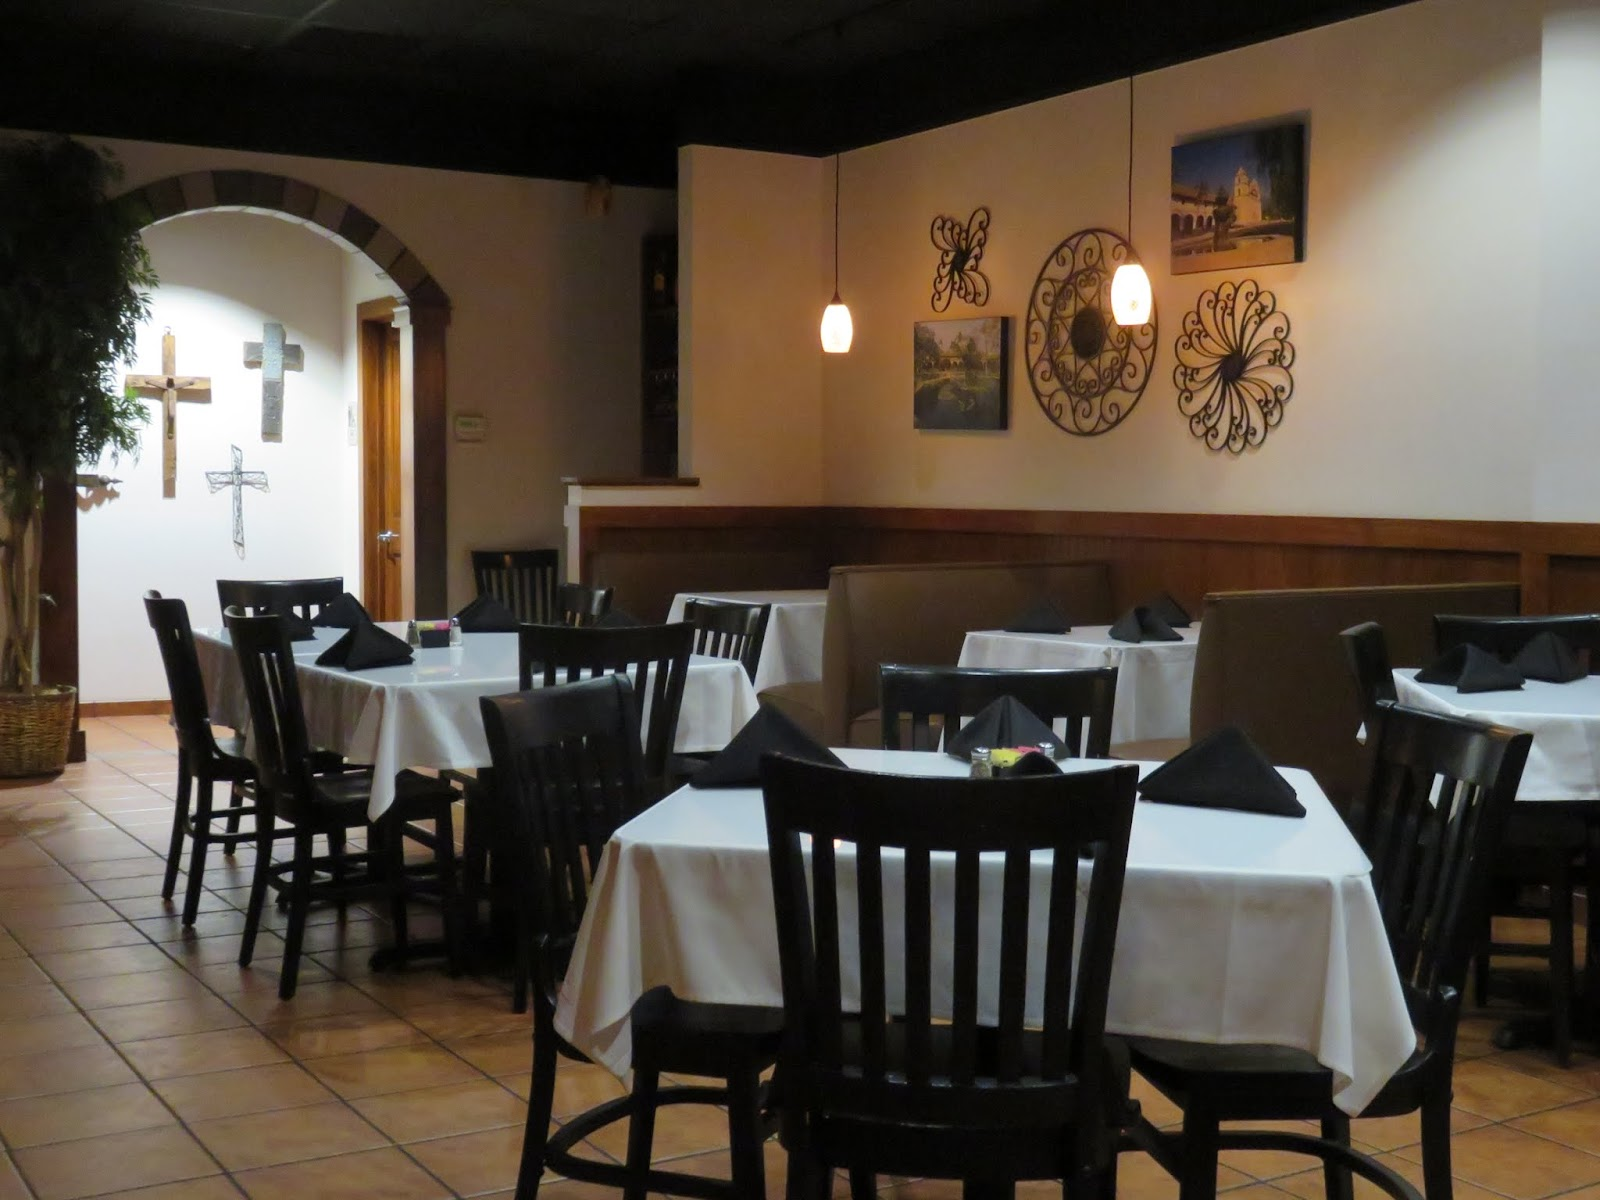 Big daddy dave california style mexican restaurant for Mexican dining room ideas